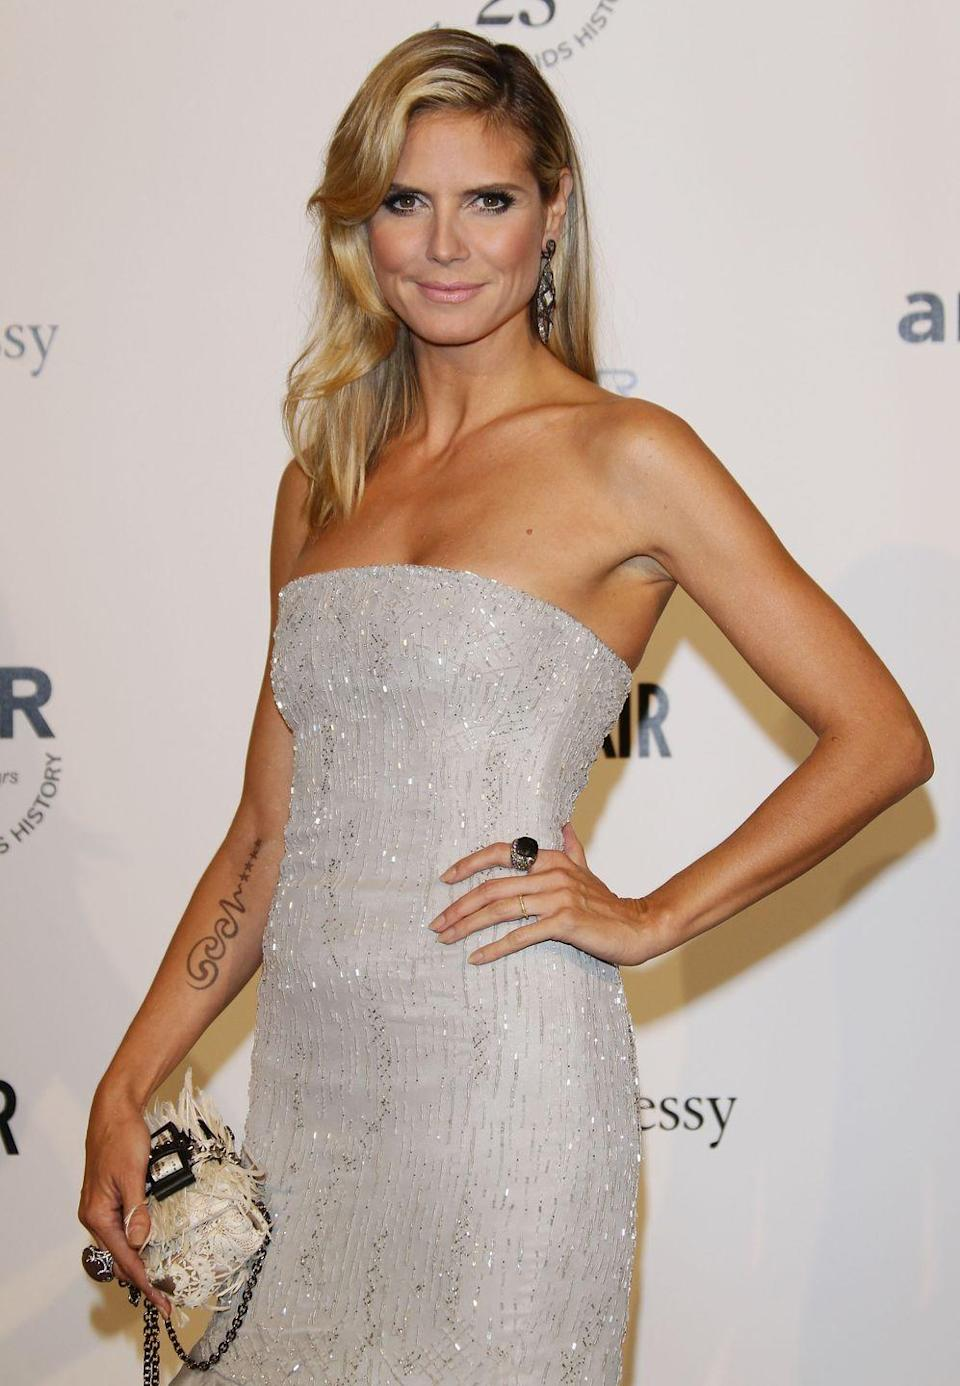 """<p>After splitting from husband of nine years Seal, Heidi Klum finalized the end of their marriage by removing the tattoo of his name from her right inner arm. The TV host and """"Kiss From a Rose"""" singer commemorated their fourth wedding anniversary with a vow renewal ceremony and tats of each other's names. A decision that later, for Heidi, did not make the cut.</p>"""